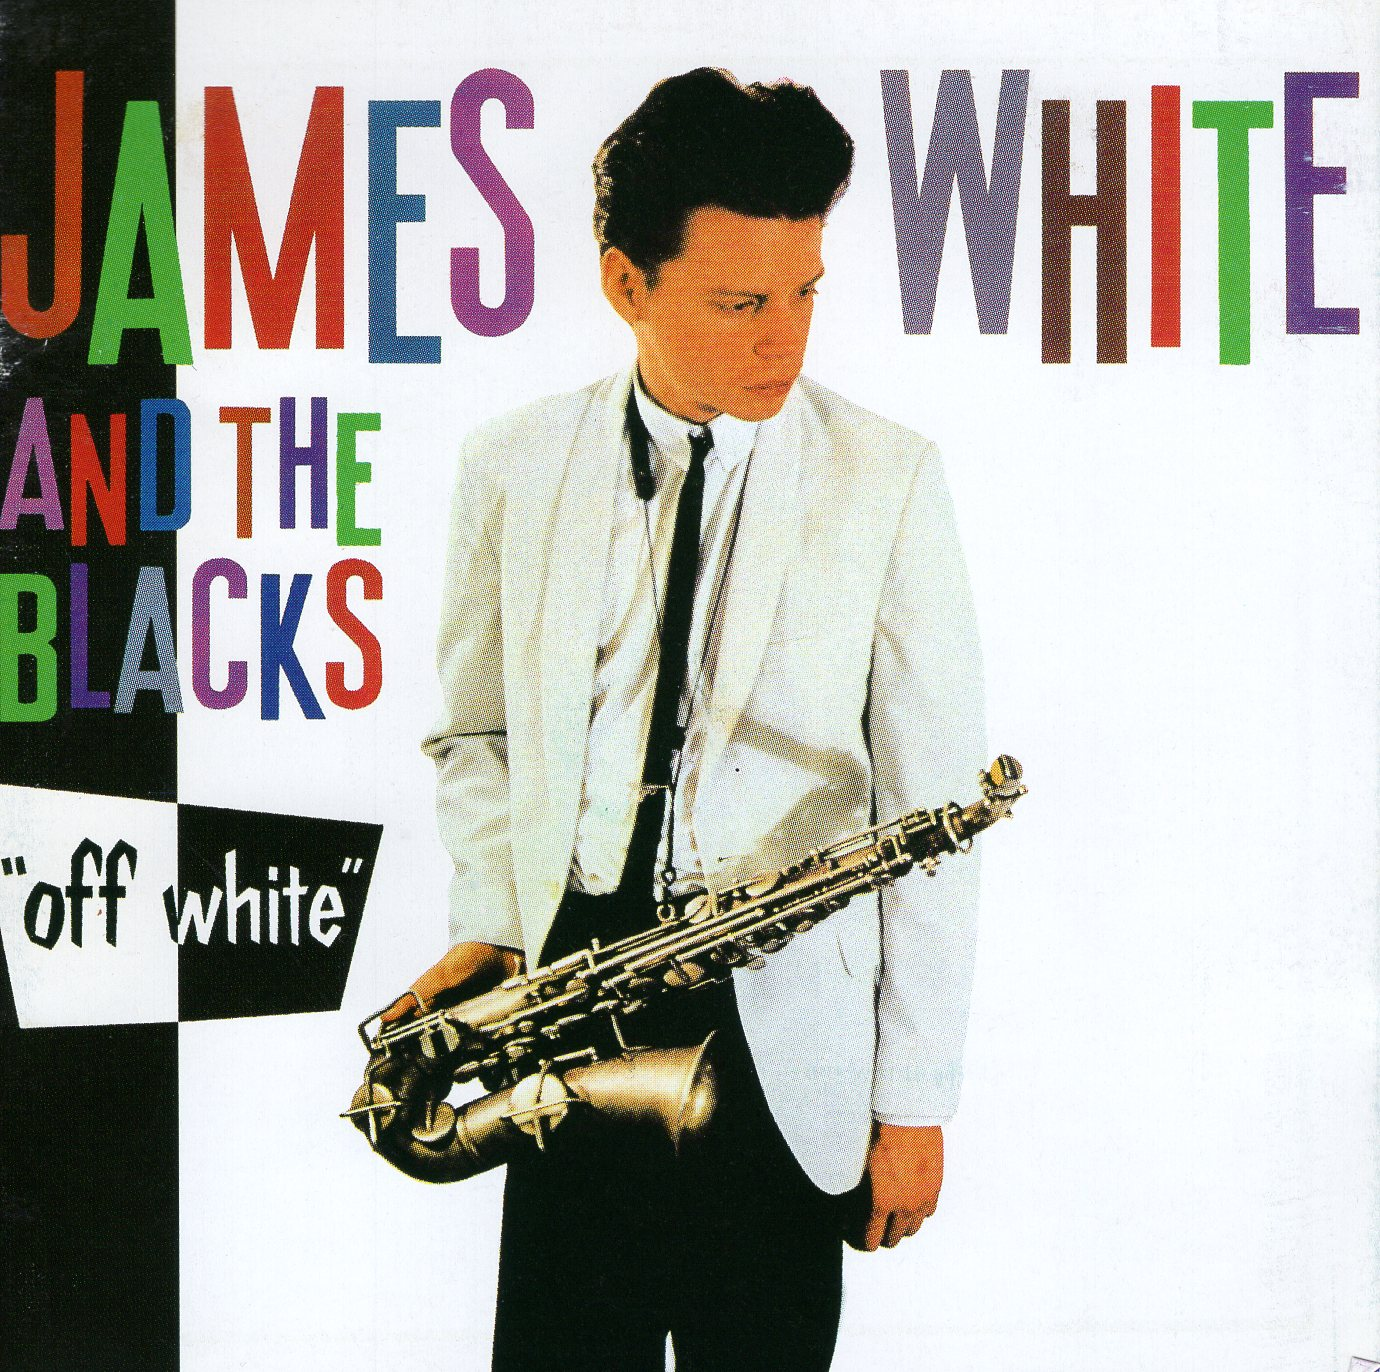 """Off White"" James White and The Blacks"